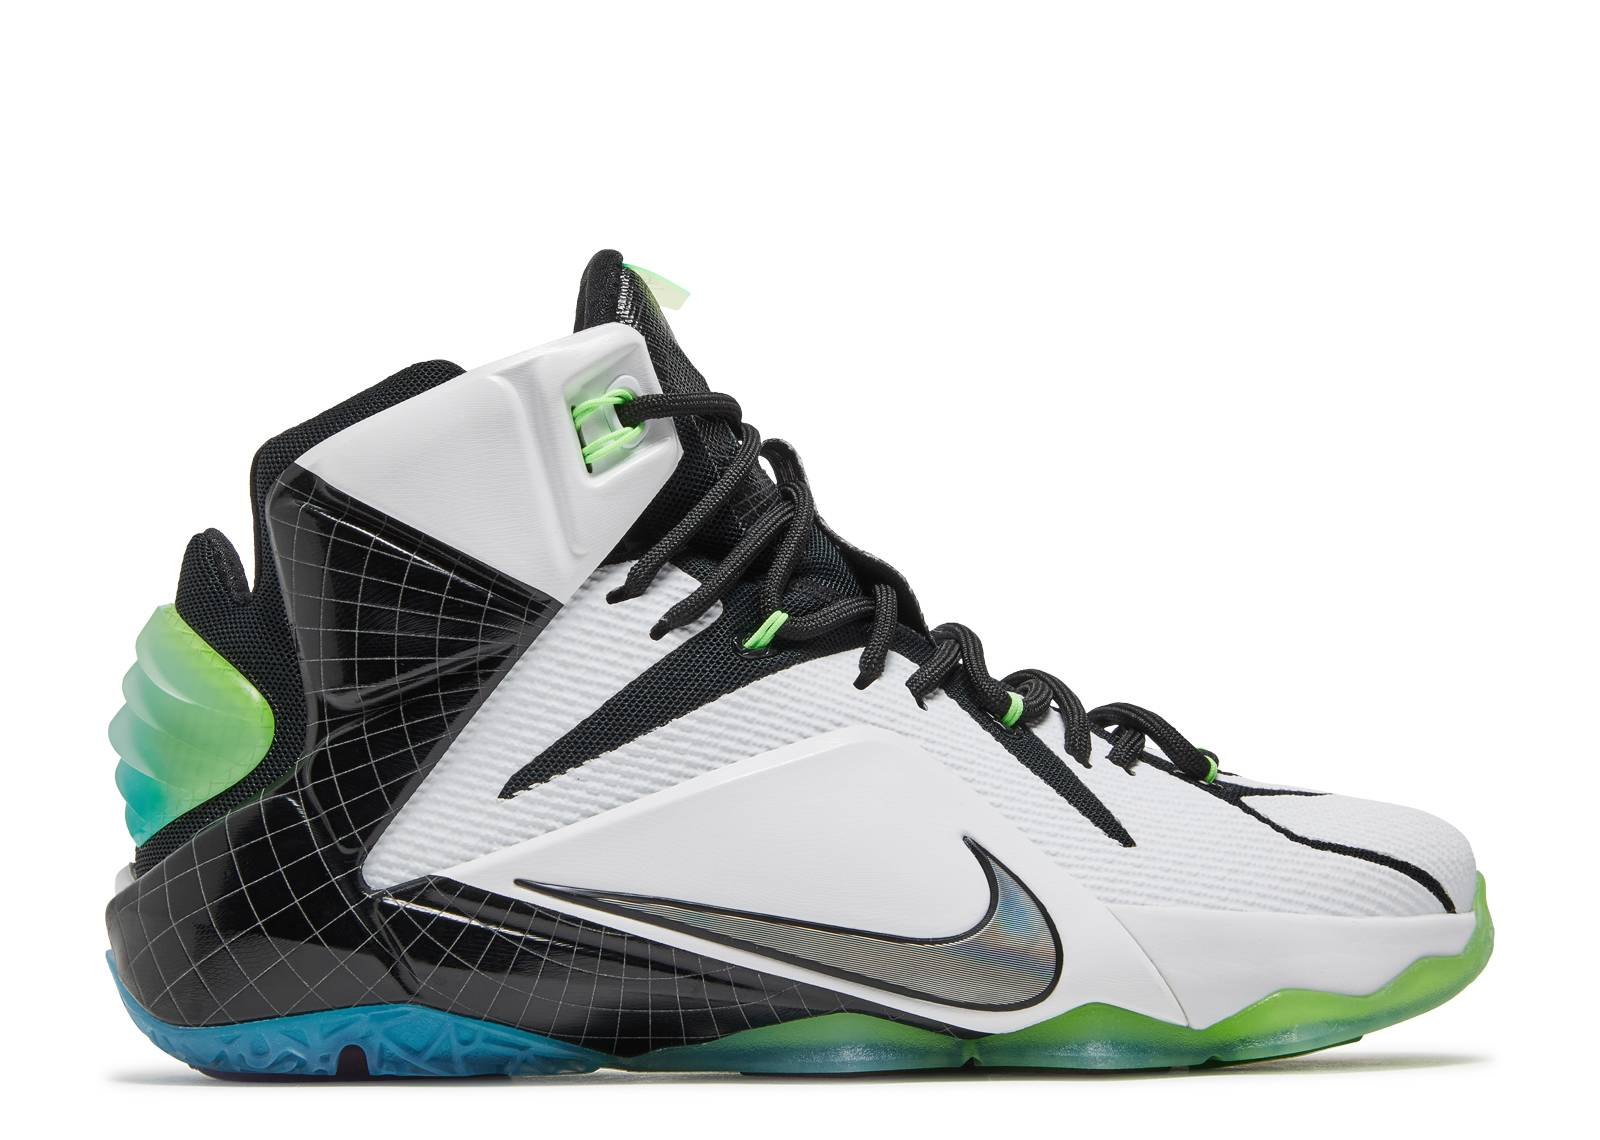 lebron 12 all star shoes - photo #16